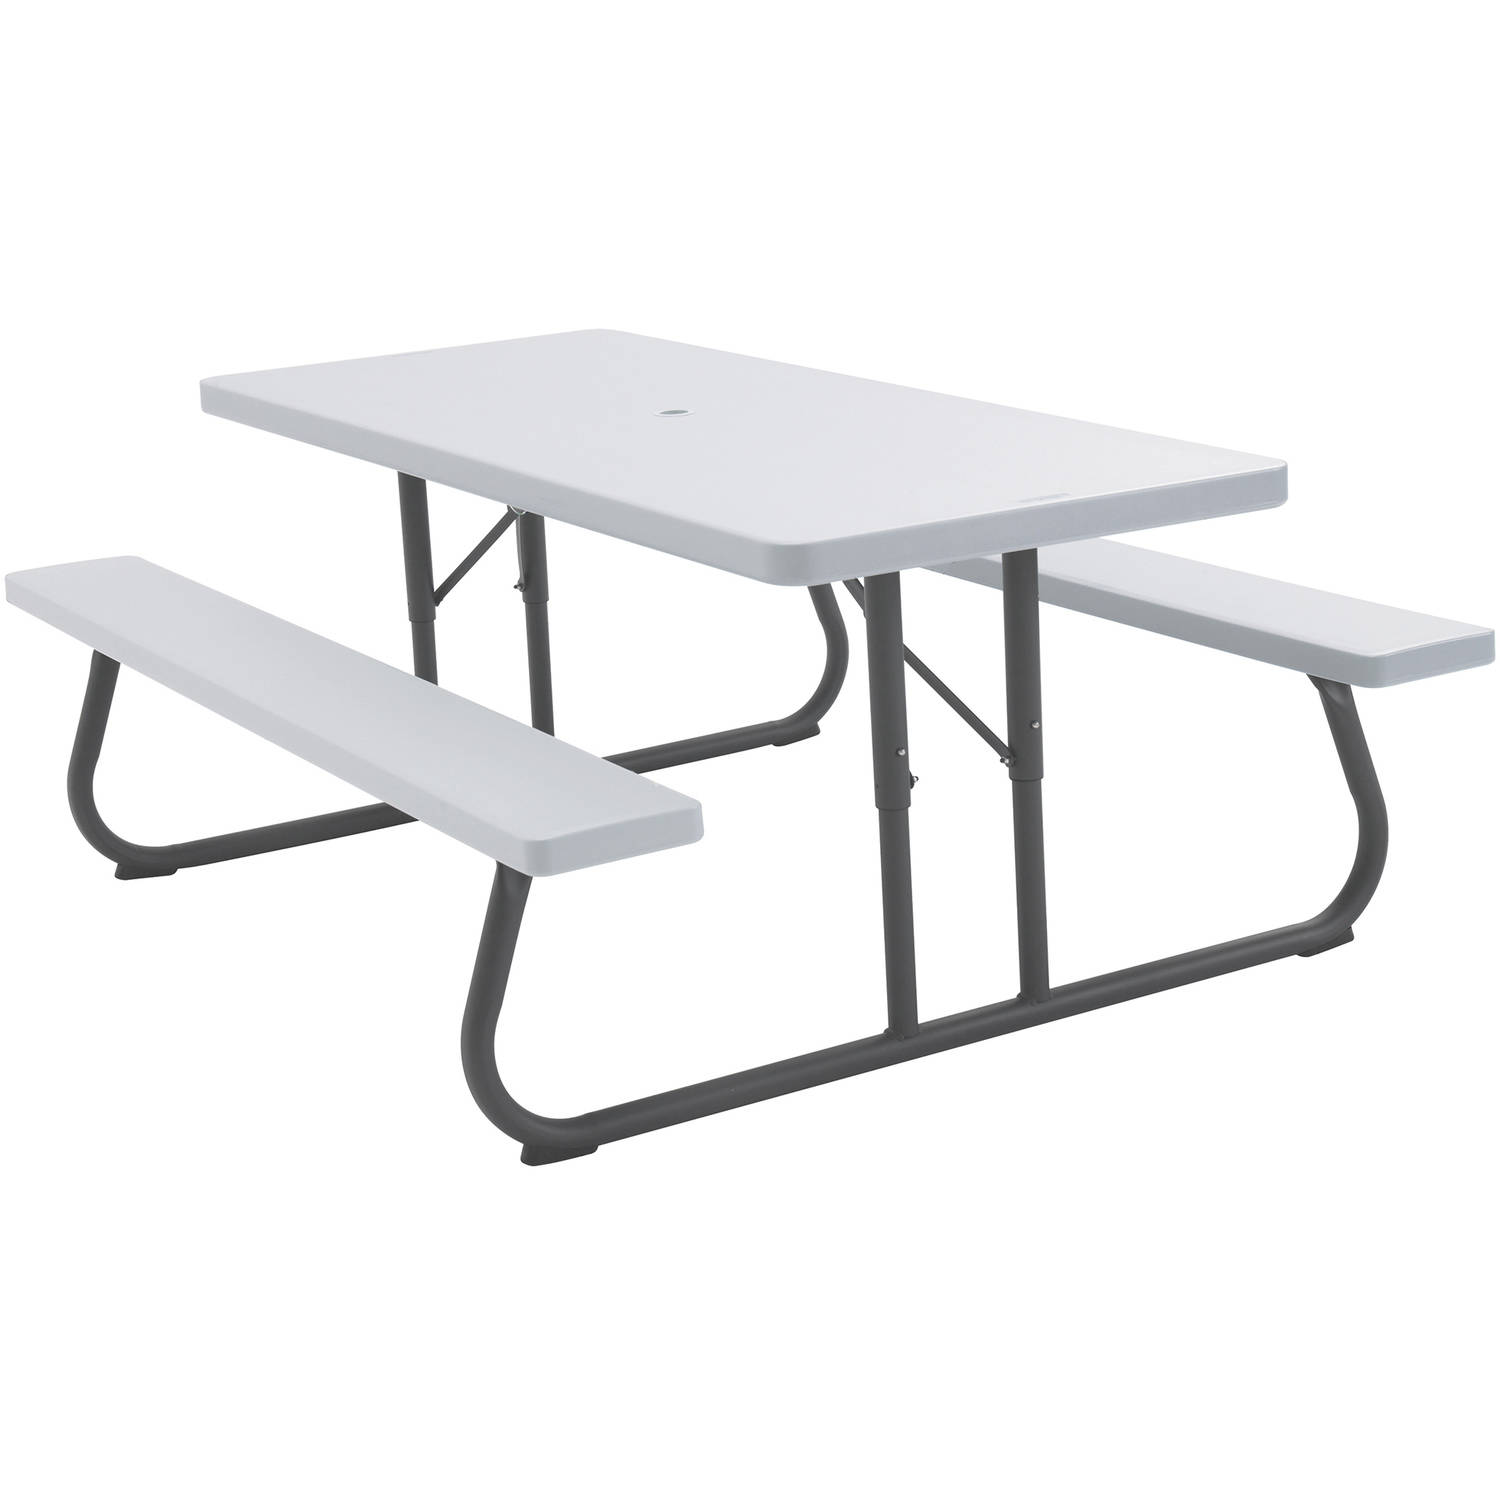 Lifetime 6' Picnic Table, White Granite by Lifetime Products